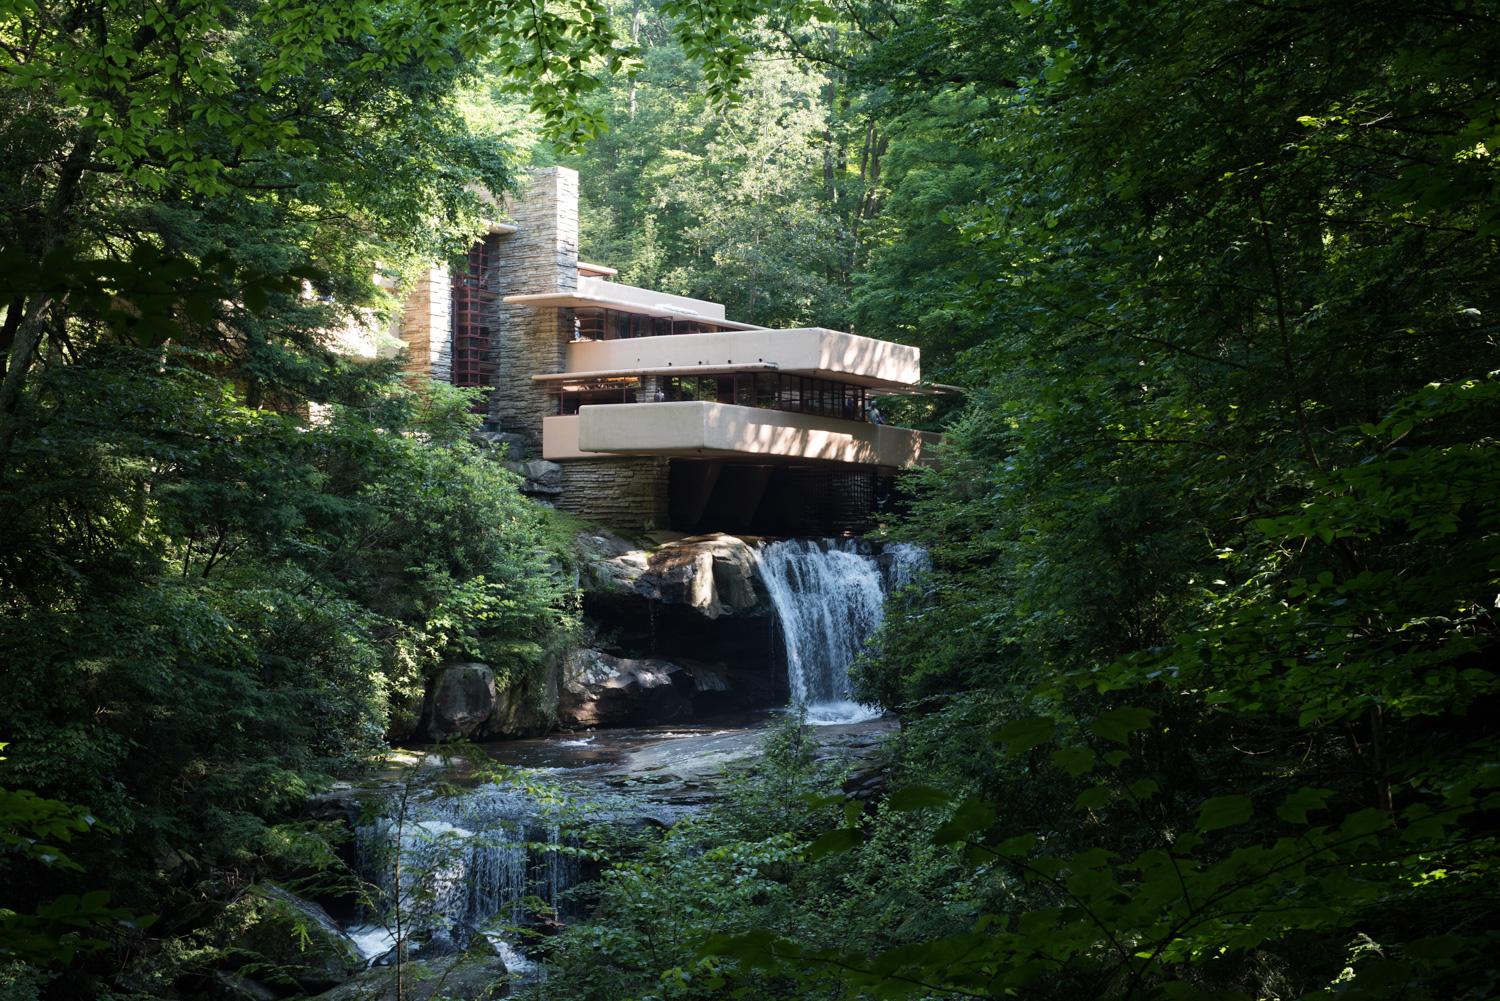 Fallingwater , designed by the legendary architect Frank Lloyd Wright, commissed by the Kaufmann family in 1935, is located in Mill Run, Pennsylvania.